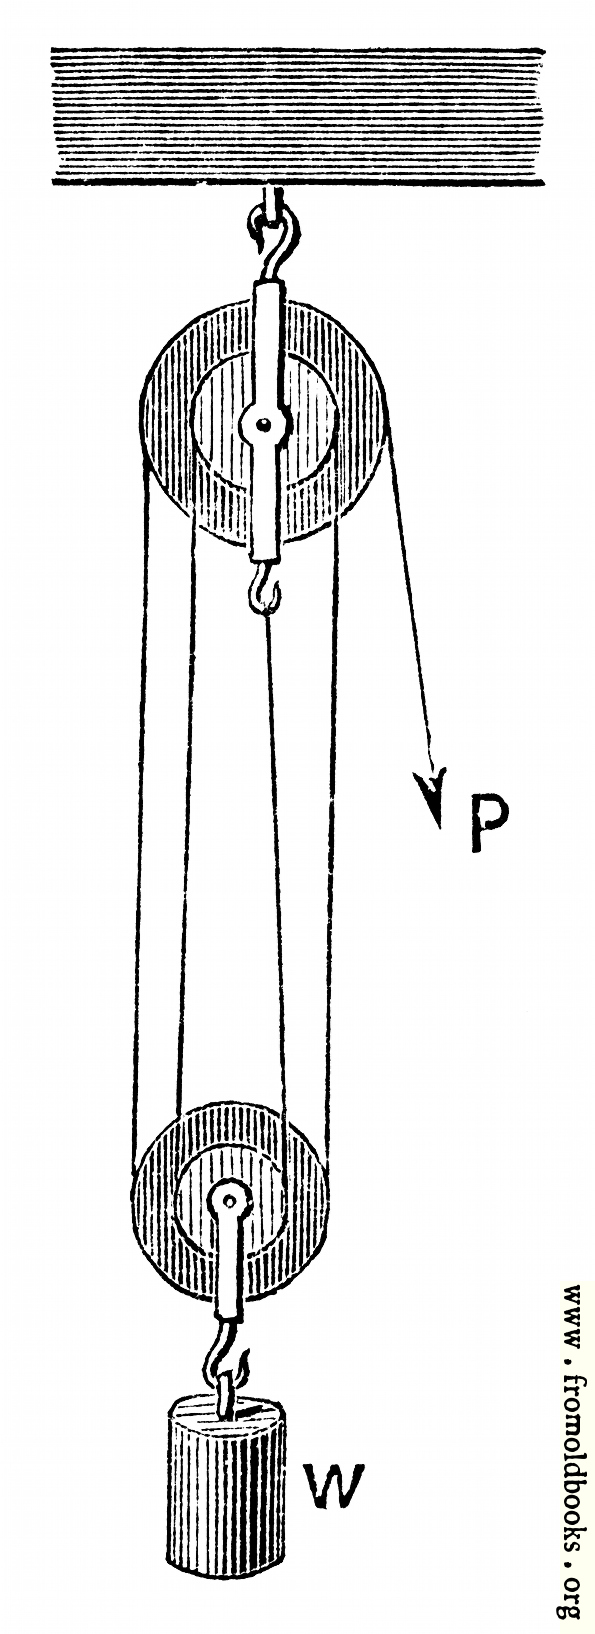 57.—Second Pulley System.